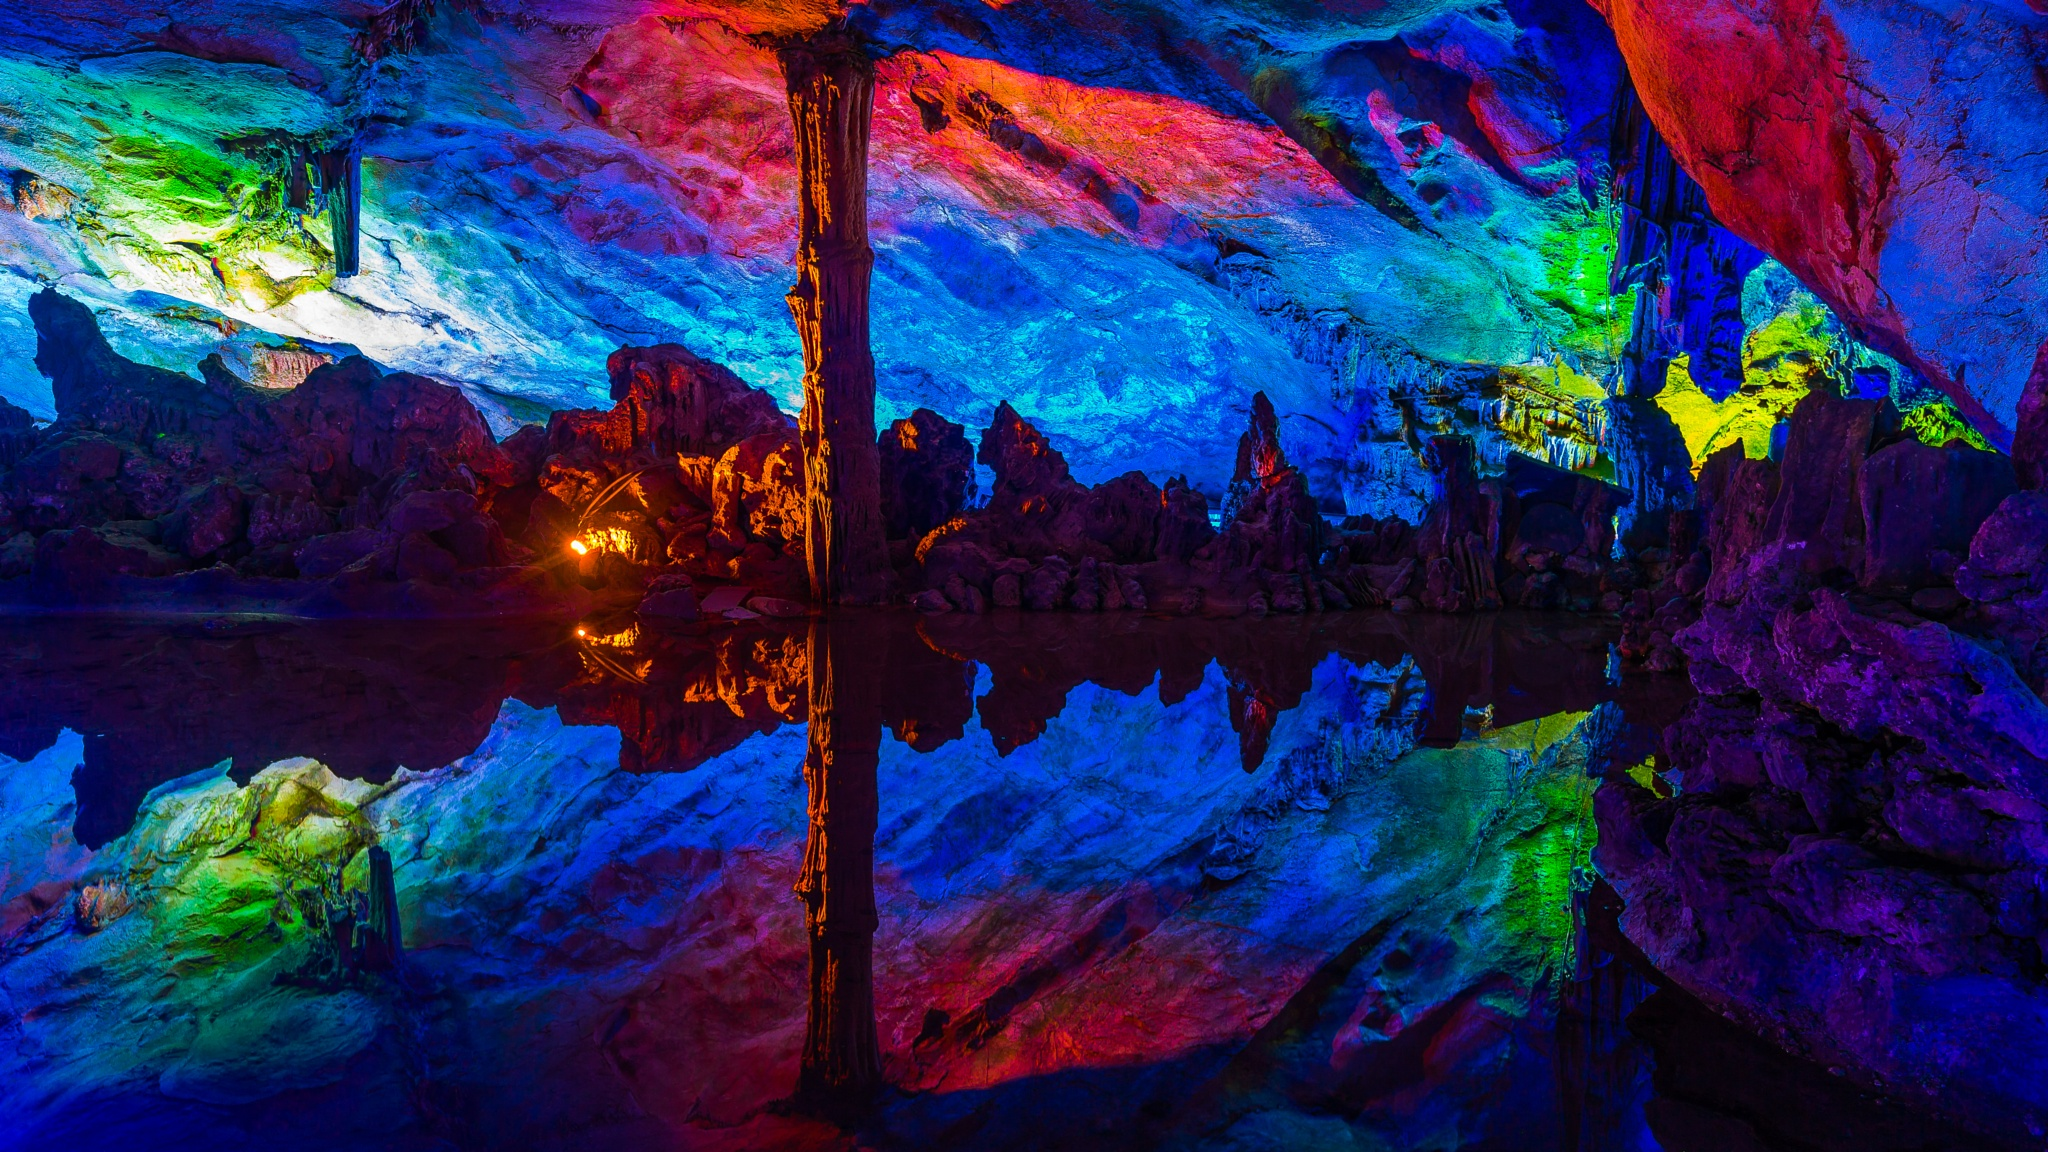 Reed Flute Cave by CamHadlowPhotography